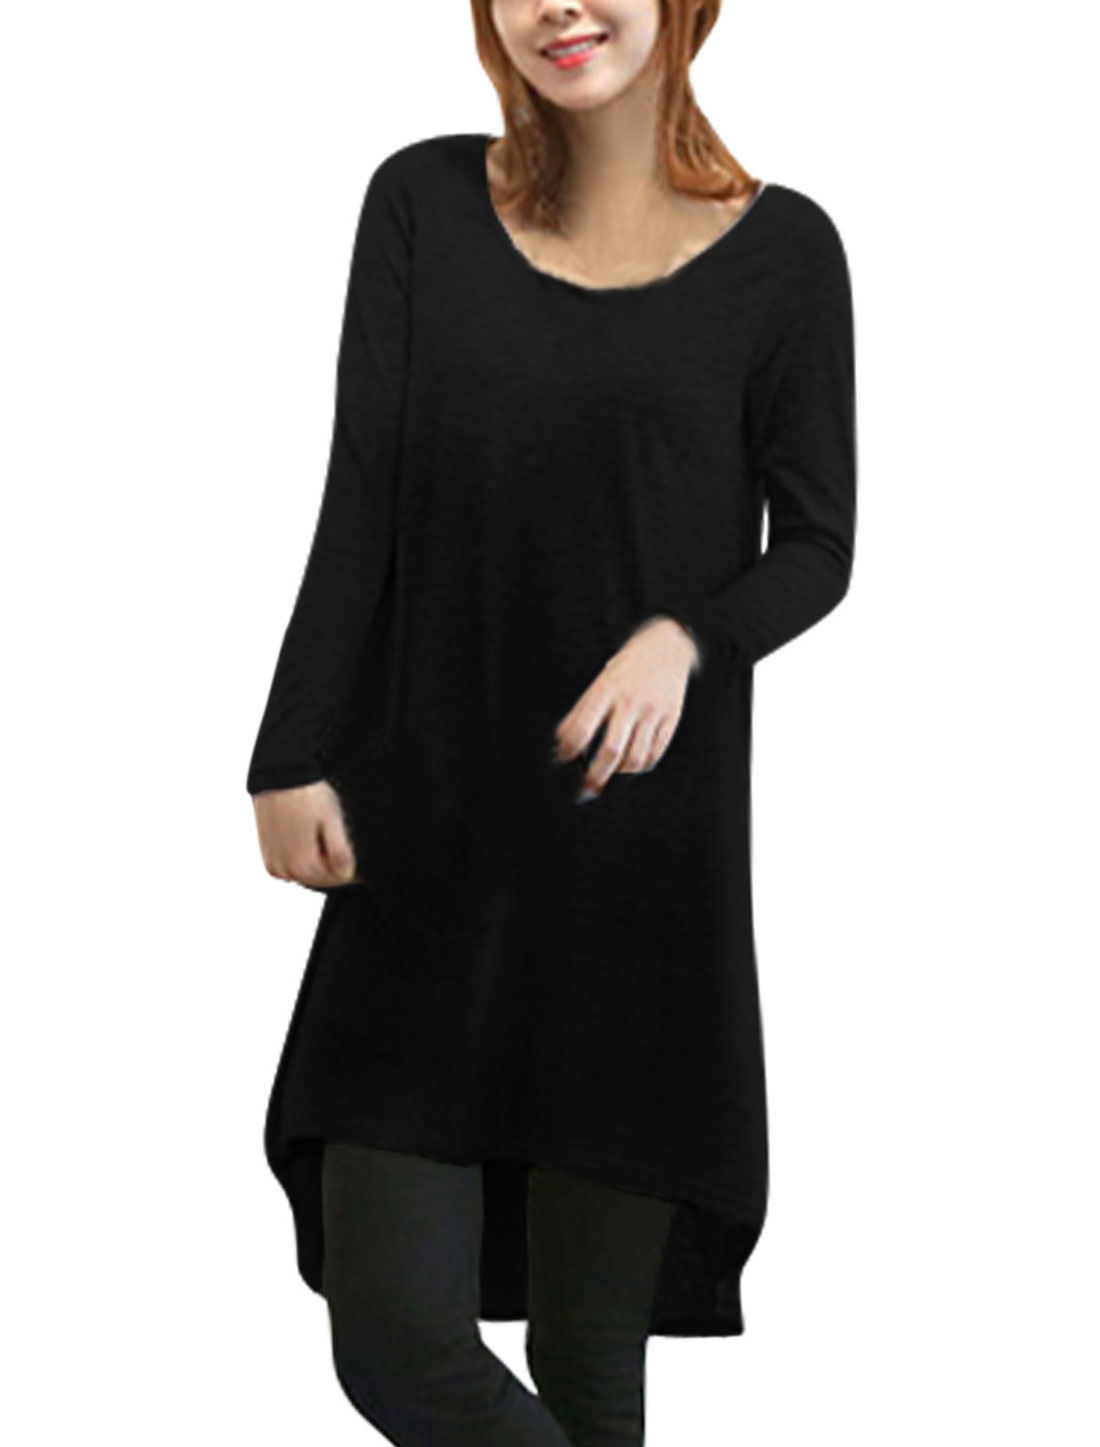 Lady Round Neck Cut Out V Design Back Casual Tunic Top Black XS